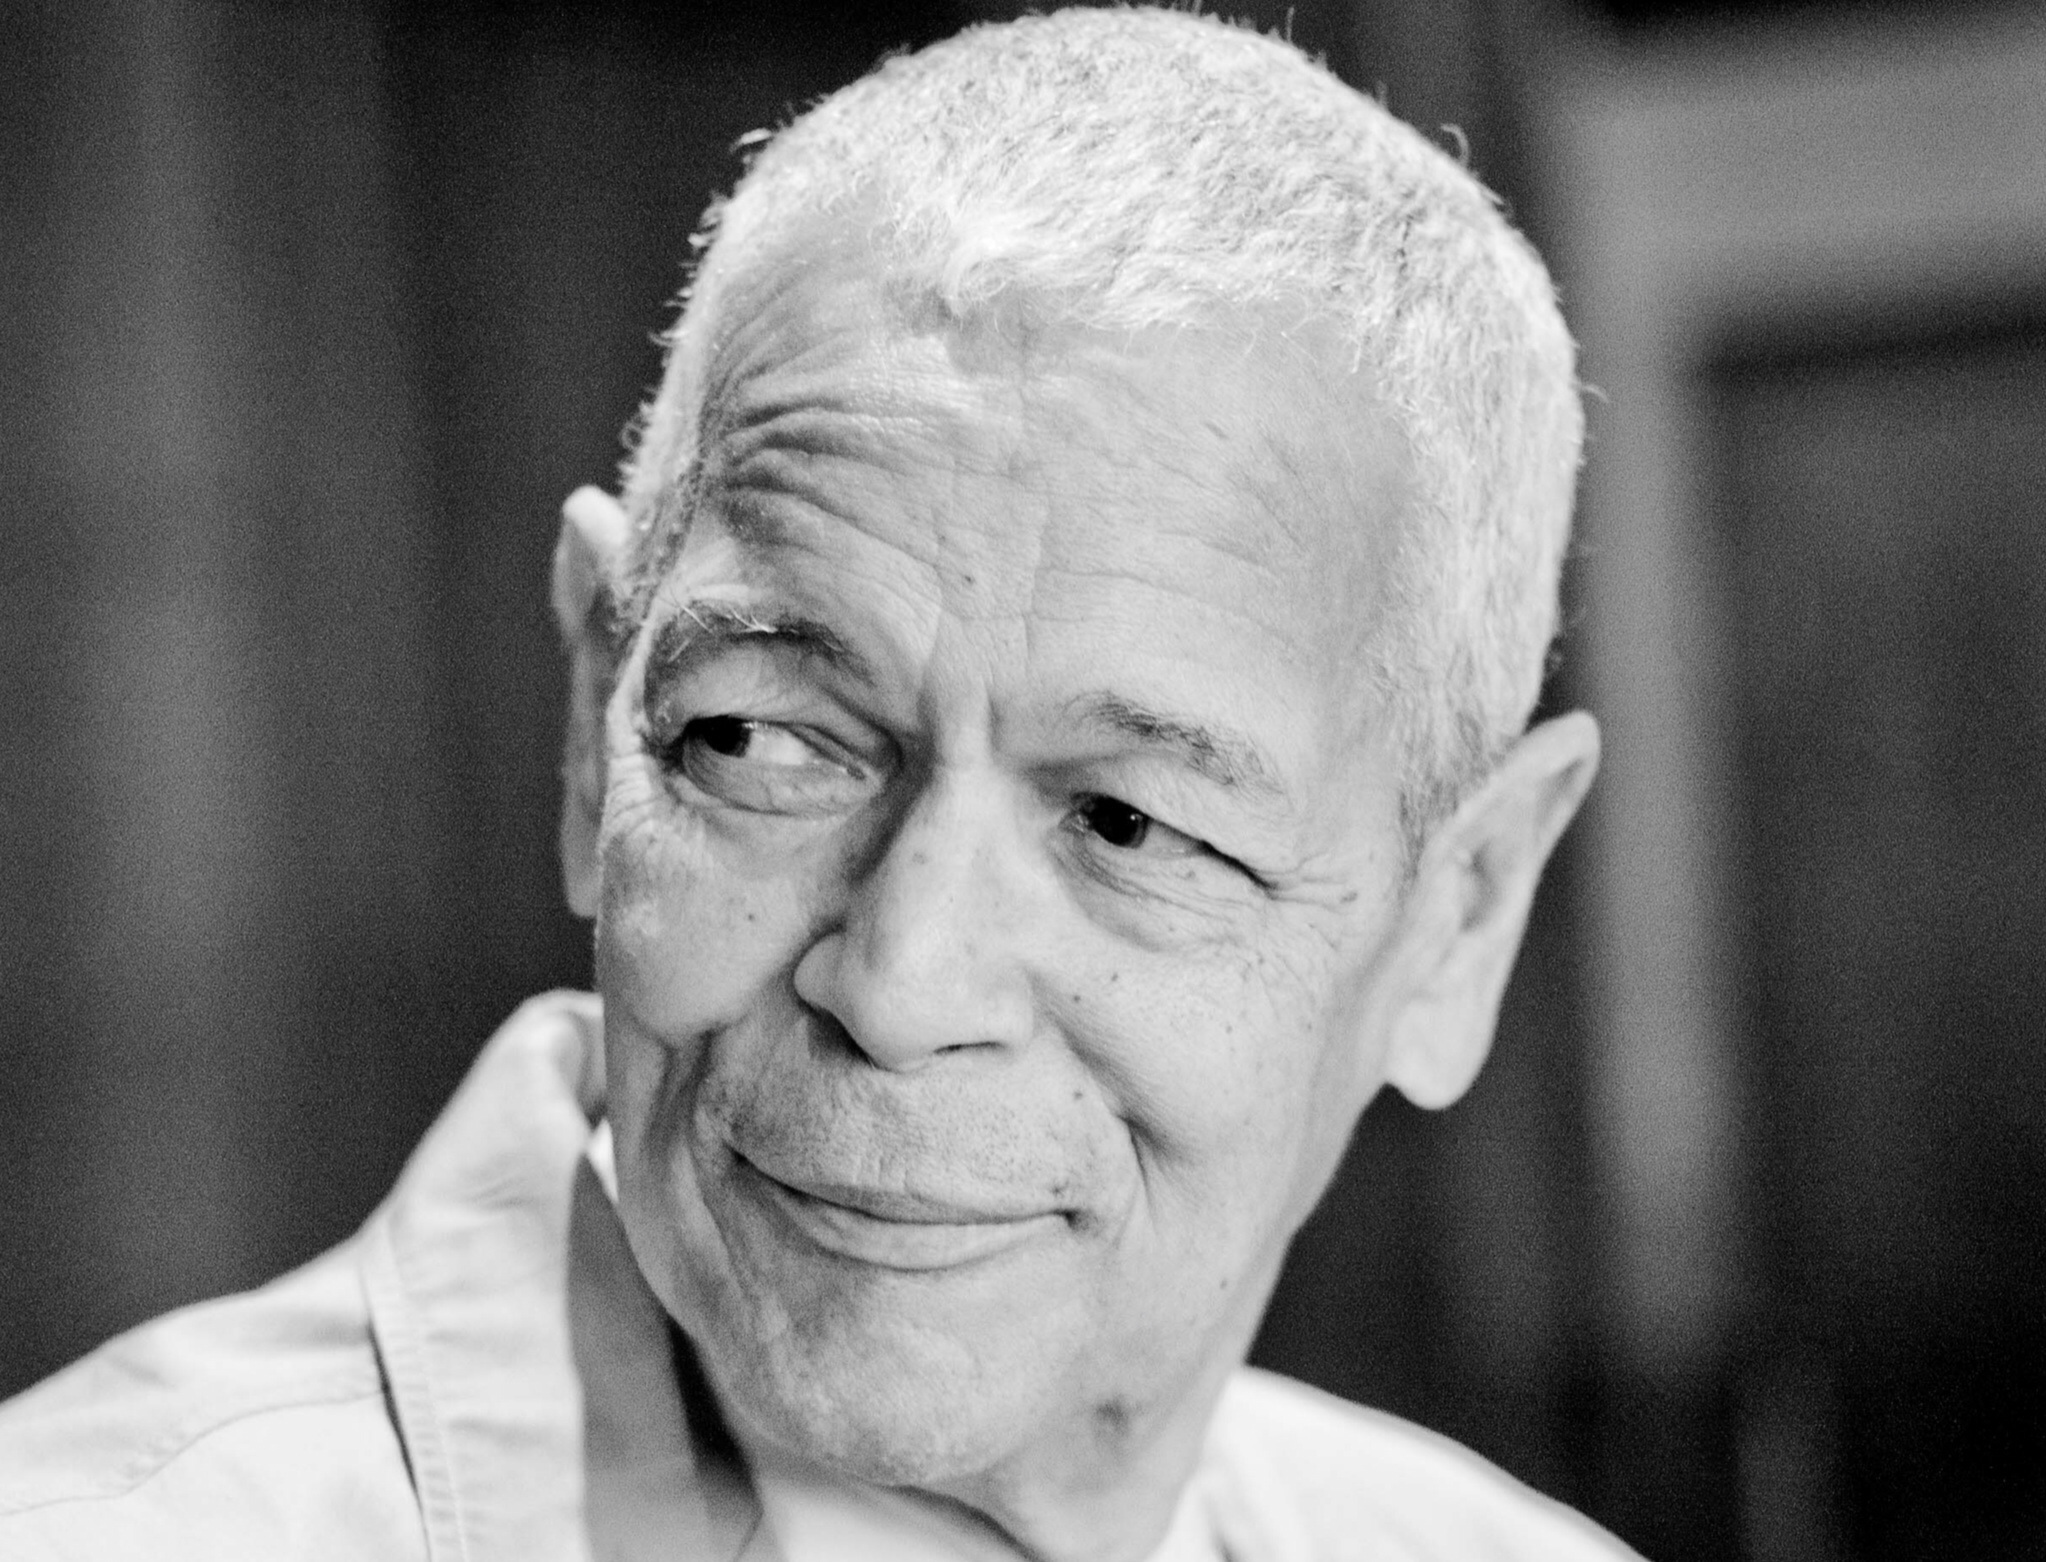 Remembered: Former NAACP Chairman, Civil Rights Leader Julian Bond